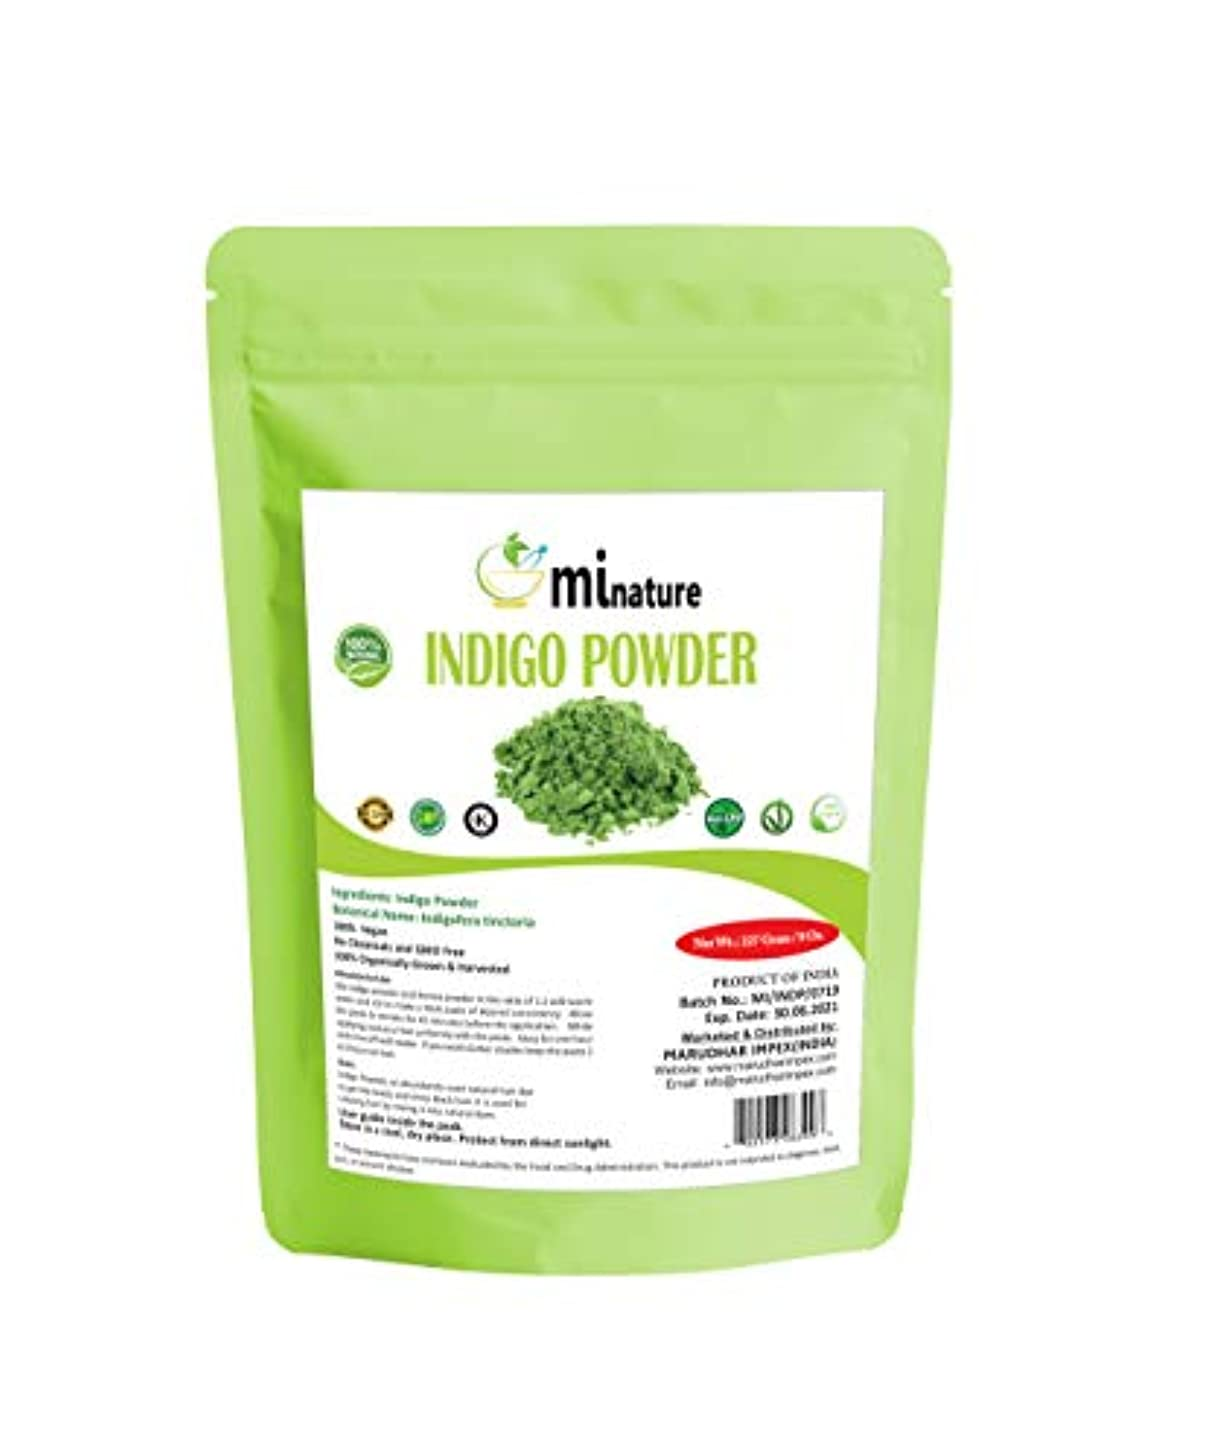 考古学本能スカートmi nature Indigo Powder -INDIGOFERA TINCTORIA ,(100% NATURAL , ORGANICALLY GROWN ) 1/2 LB (227 grams) RESEALABLE...